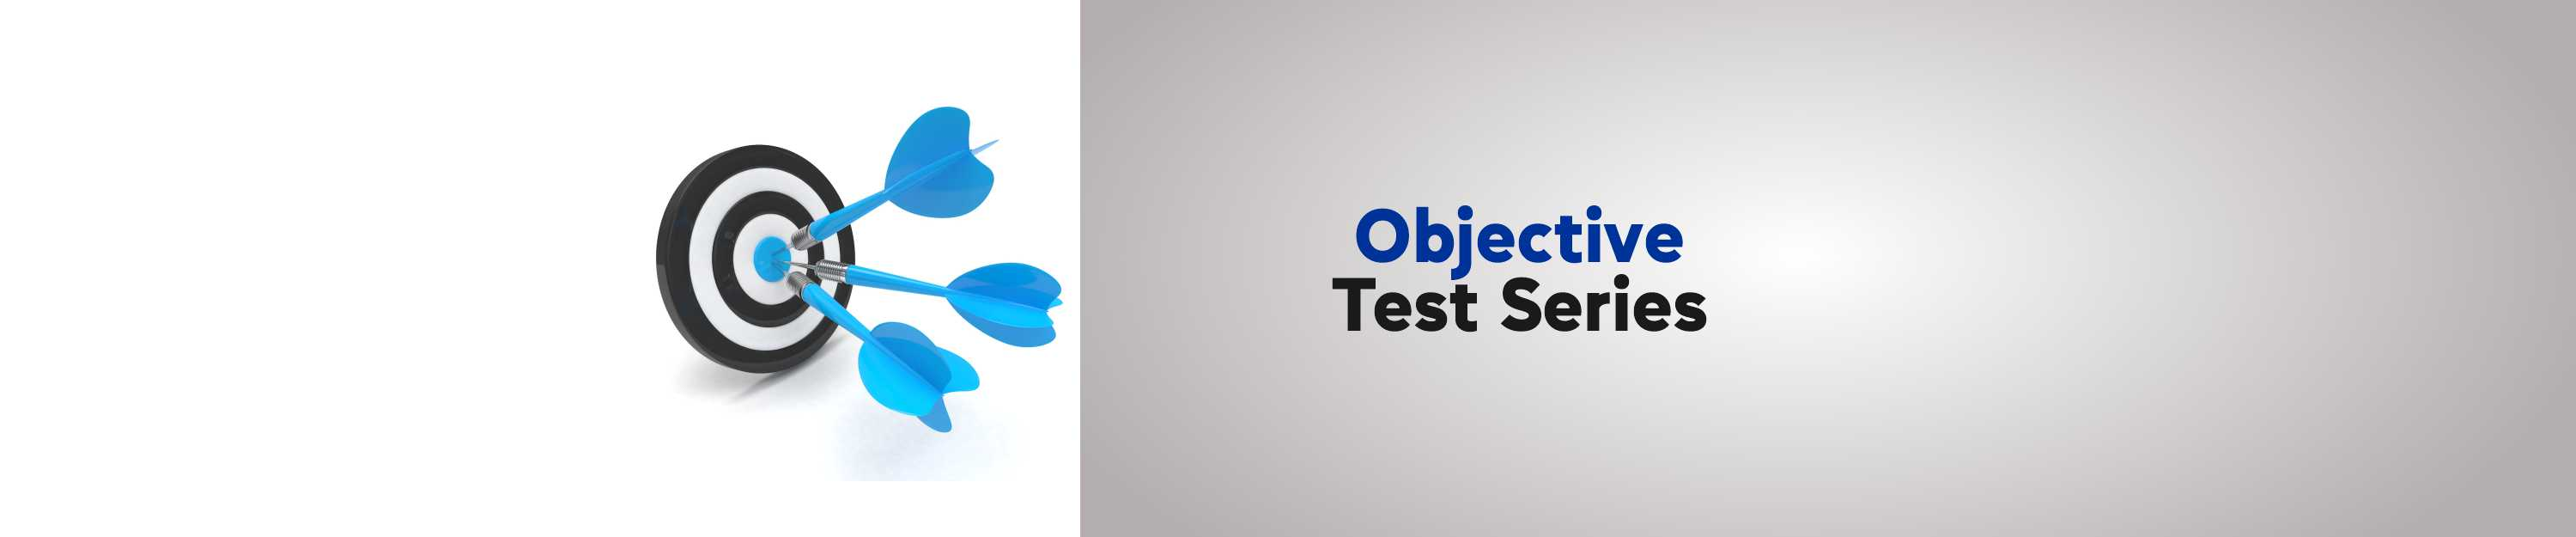 OBJECTIVE TEST SERIES